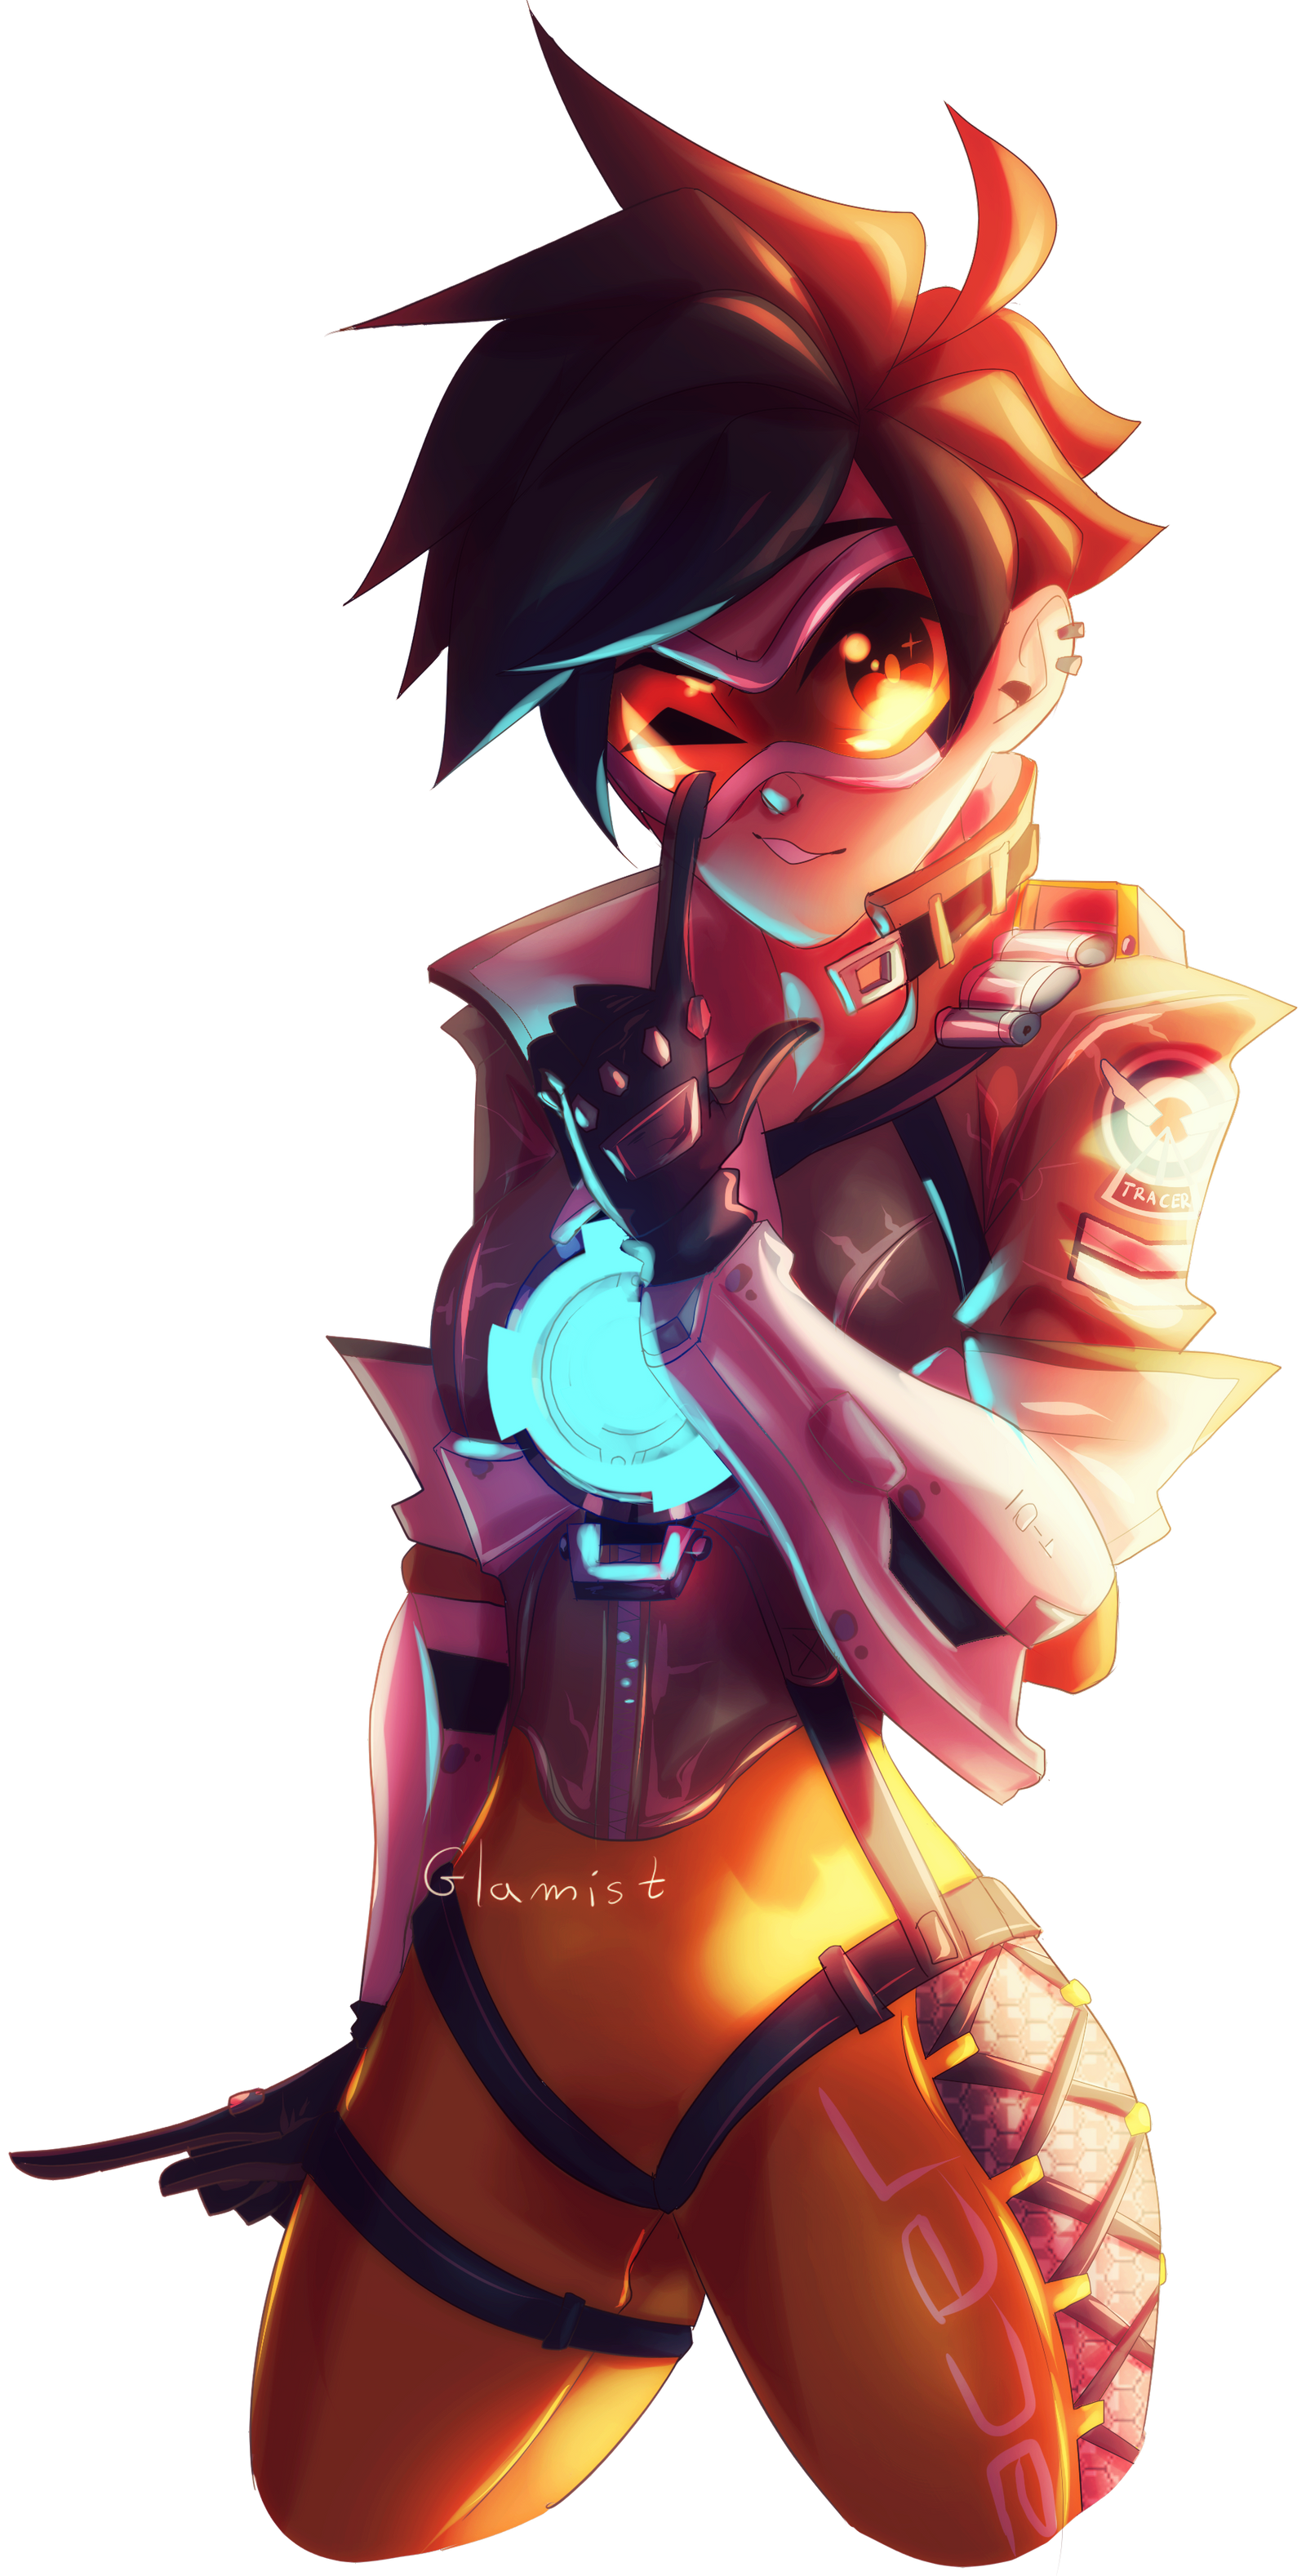 TRACER by Glamist on DeviantArt